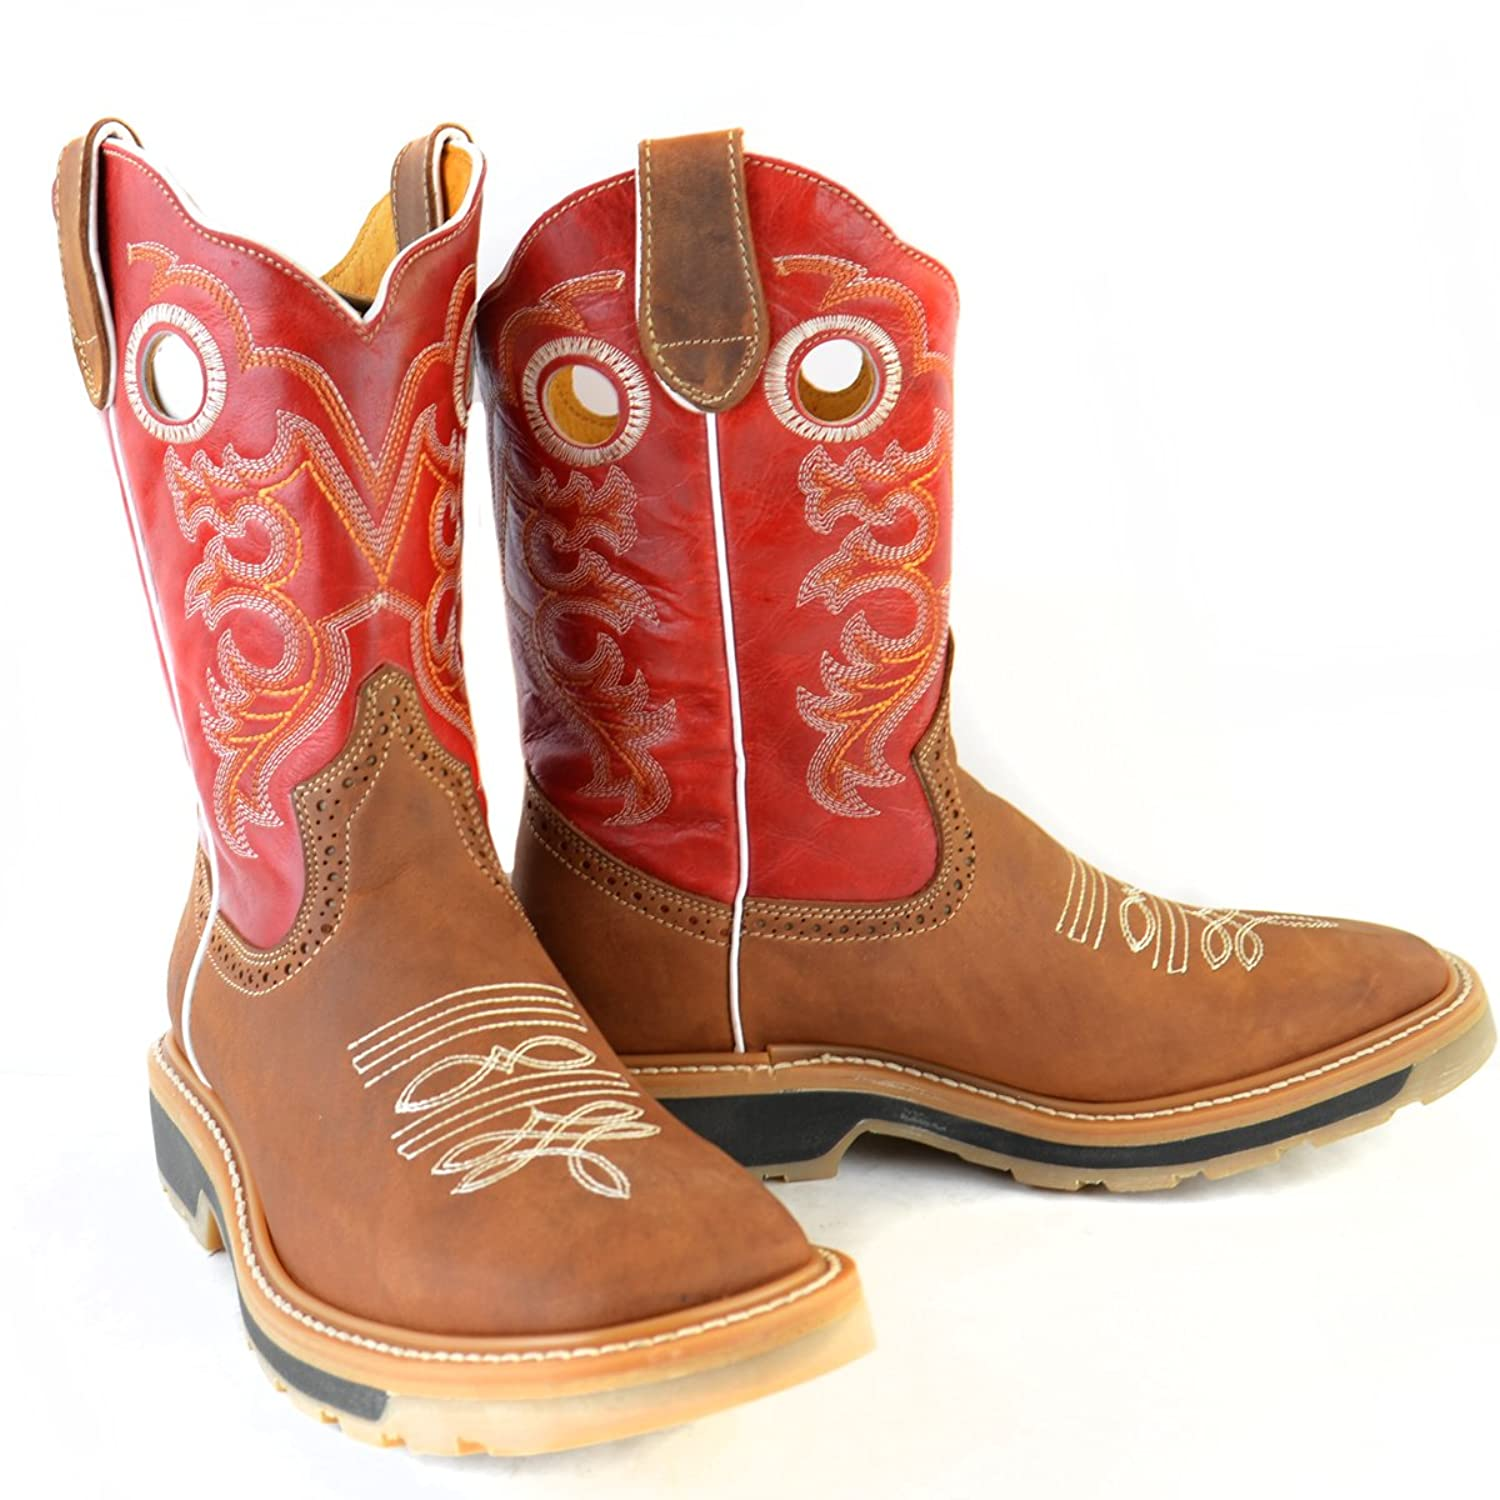 Original Tan Cowhide Leather Rodeo-Toe Western Boot